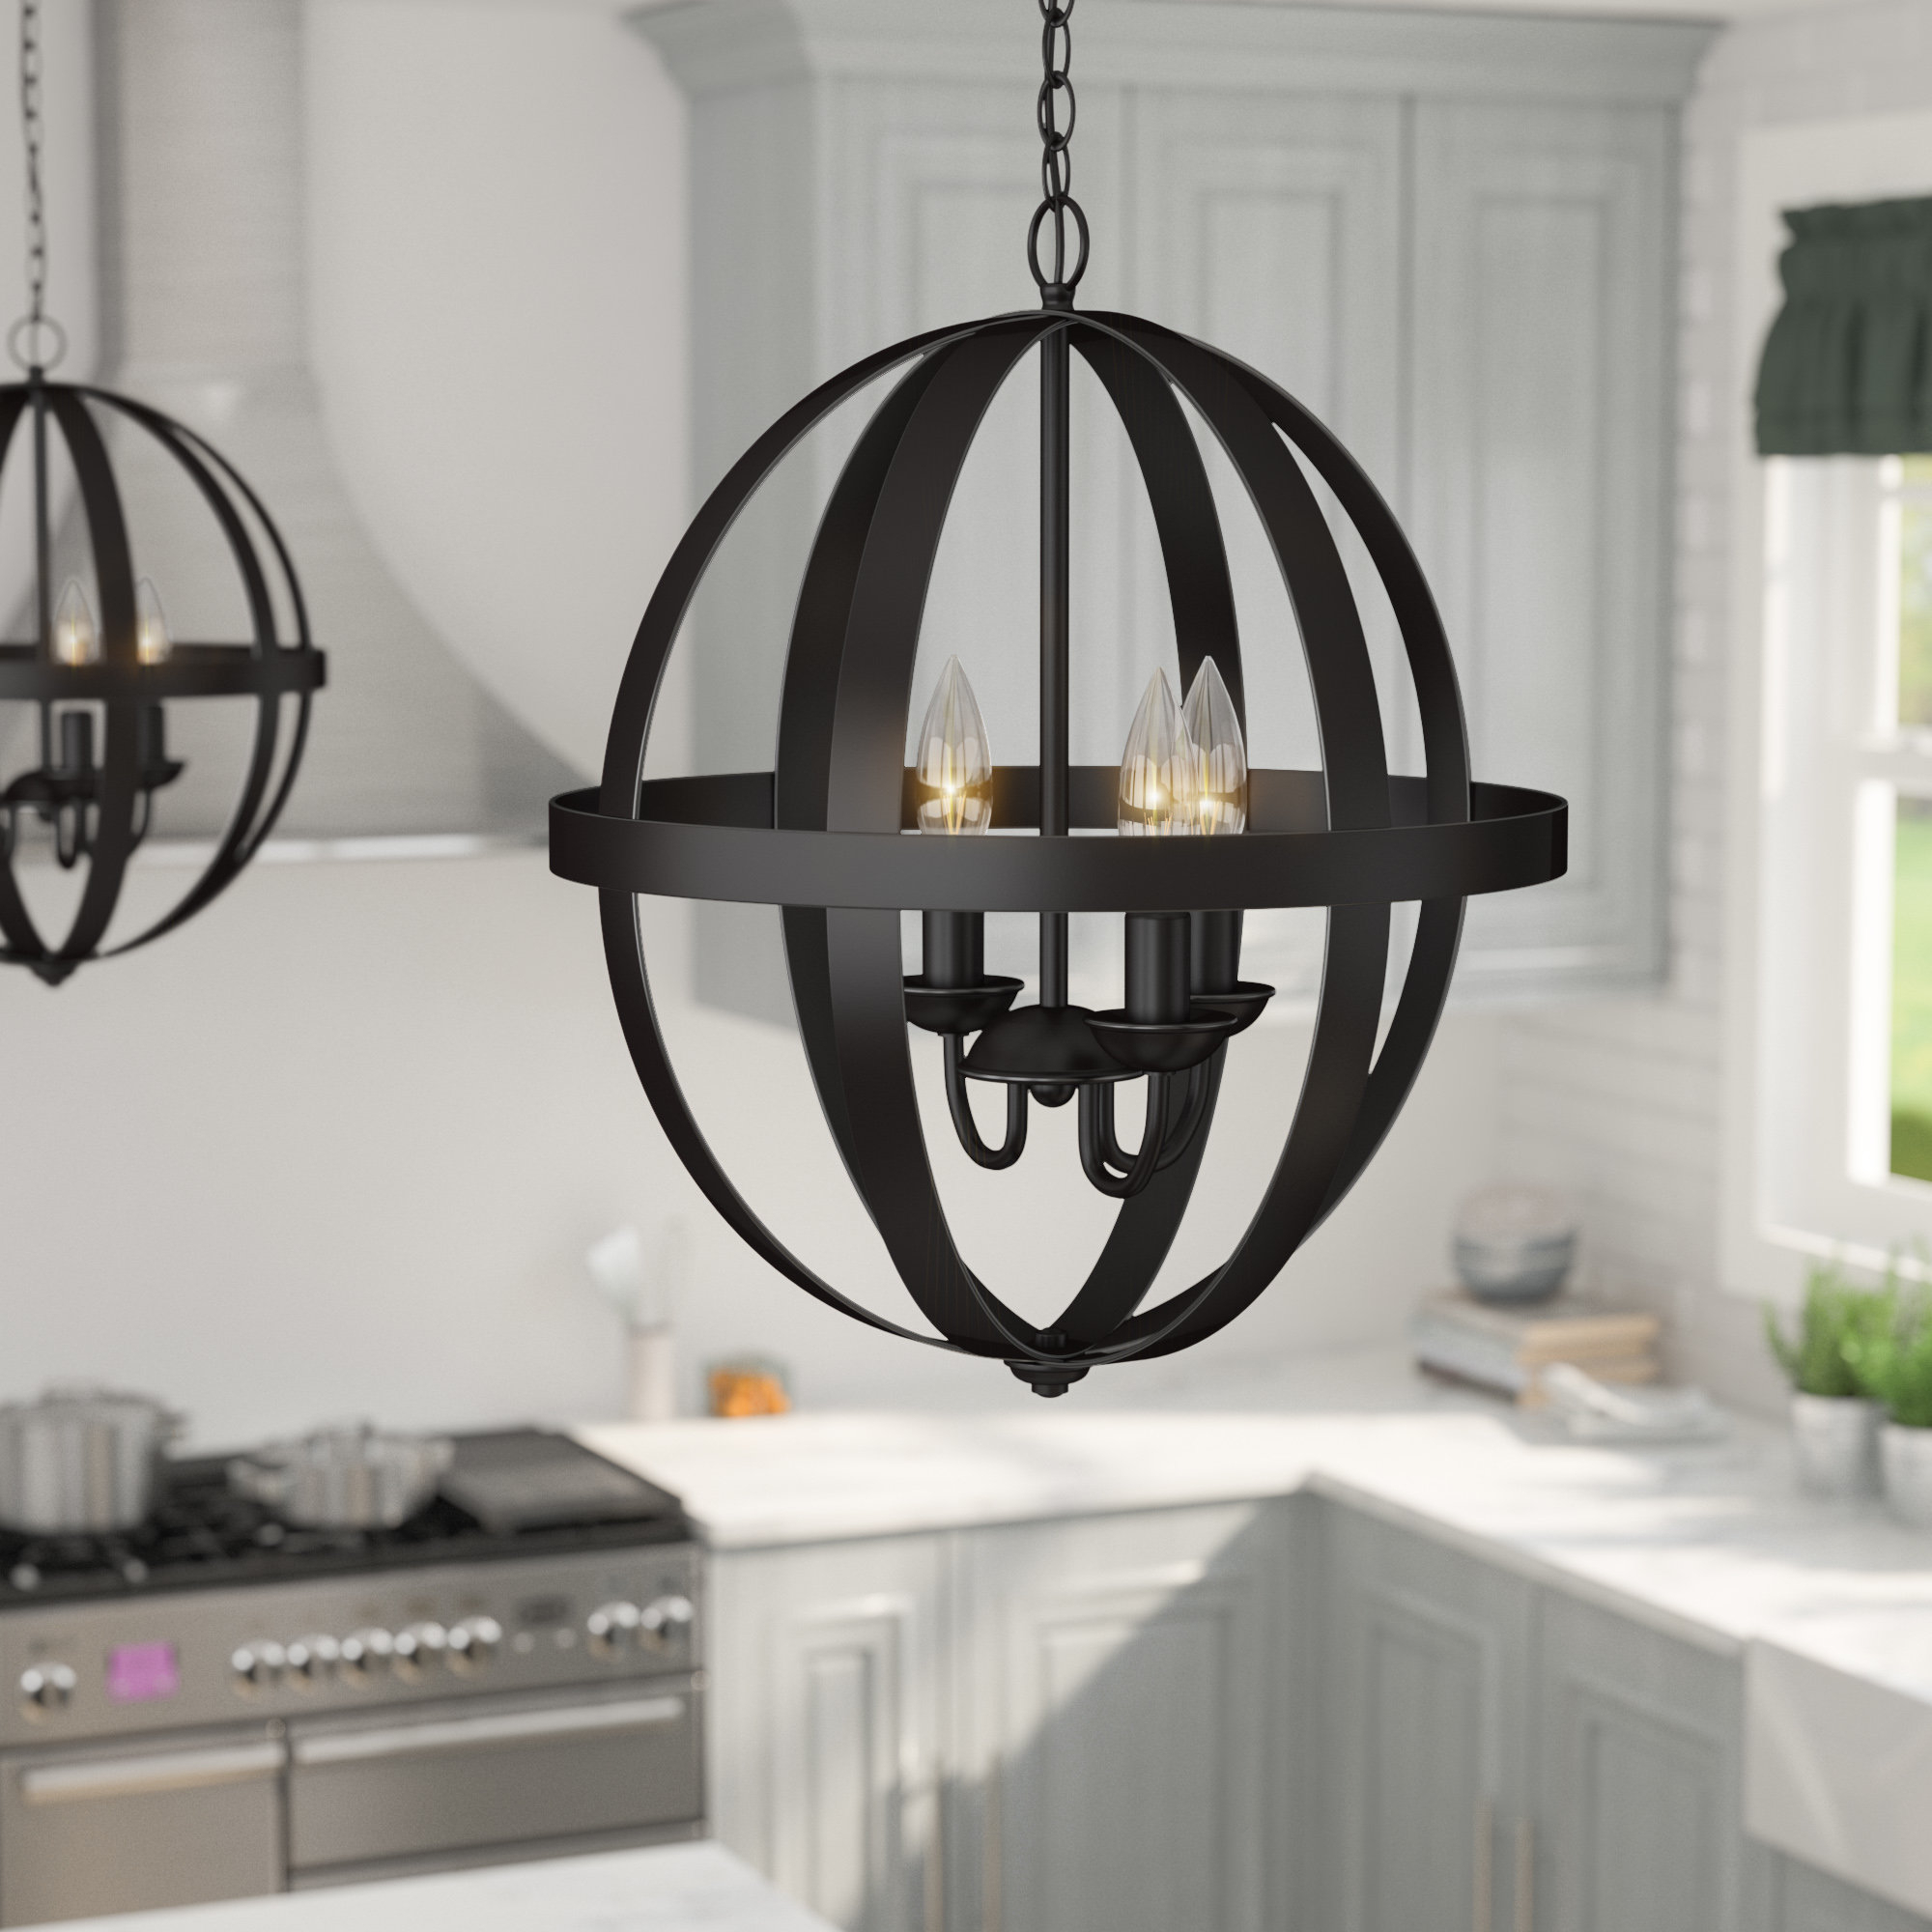 Most Recently Released La Barge 3 Light Globe Chandelier Pertaining To Alden 3 Light Single Globe Pendants (View 15 of 25)